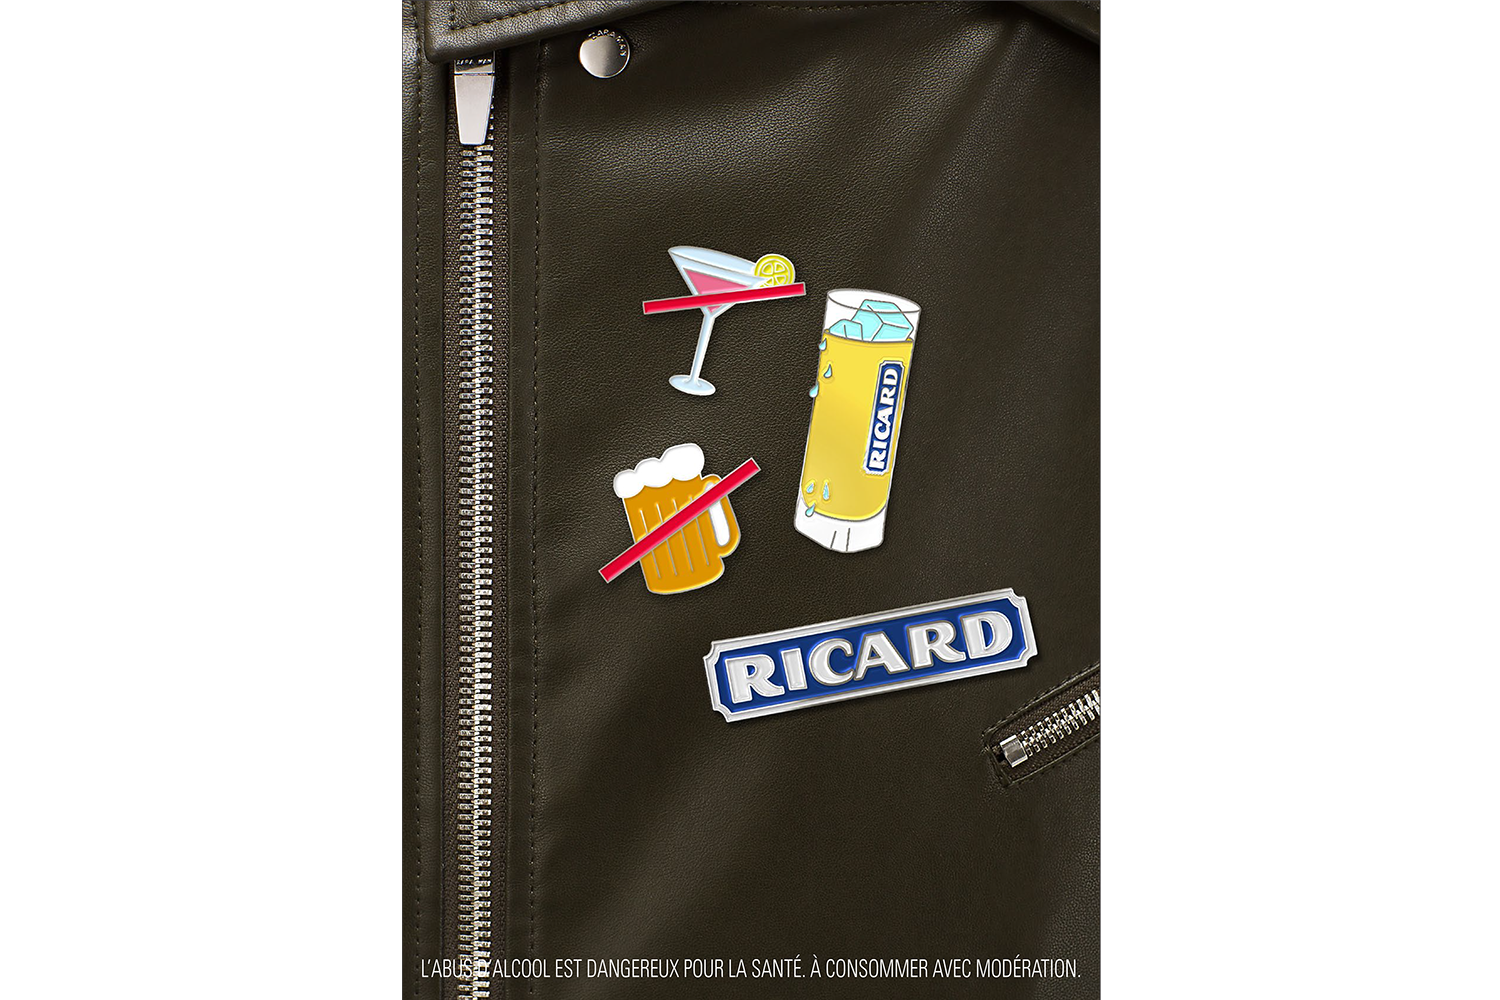 Ricard_2017_d.png